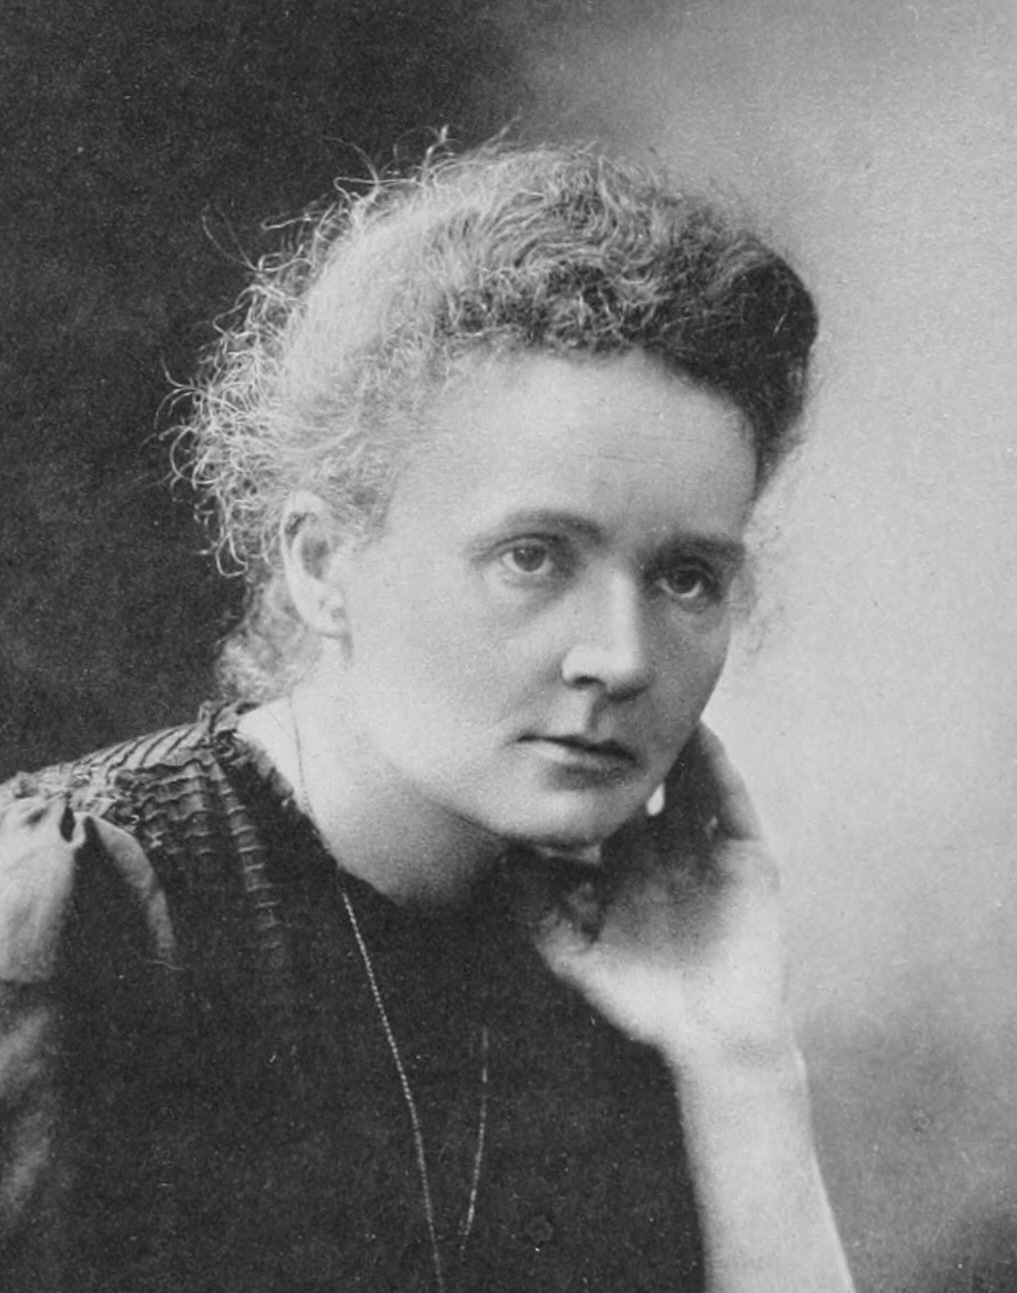 http://upload.wikimedia.org/wikipedia/commons/3/39/Marie_Curie_%28Nobel-Chem%29.png